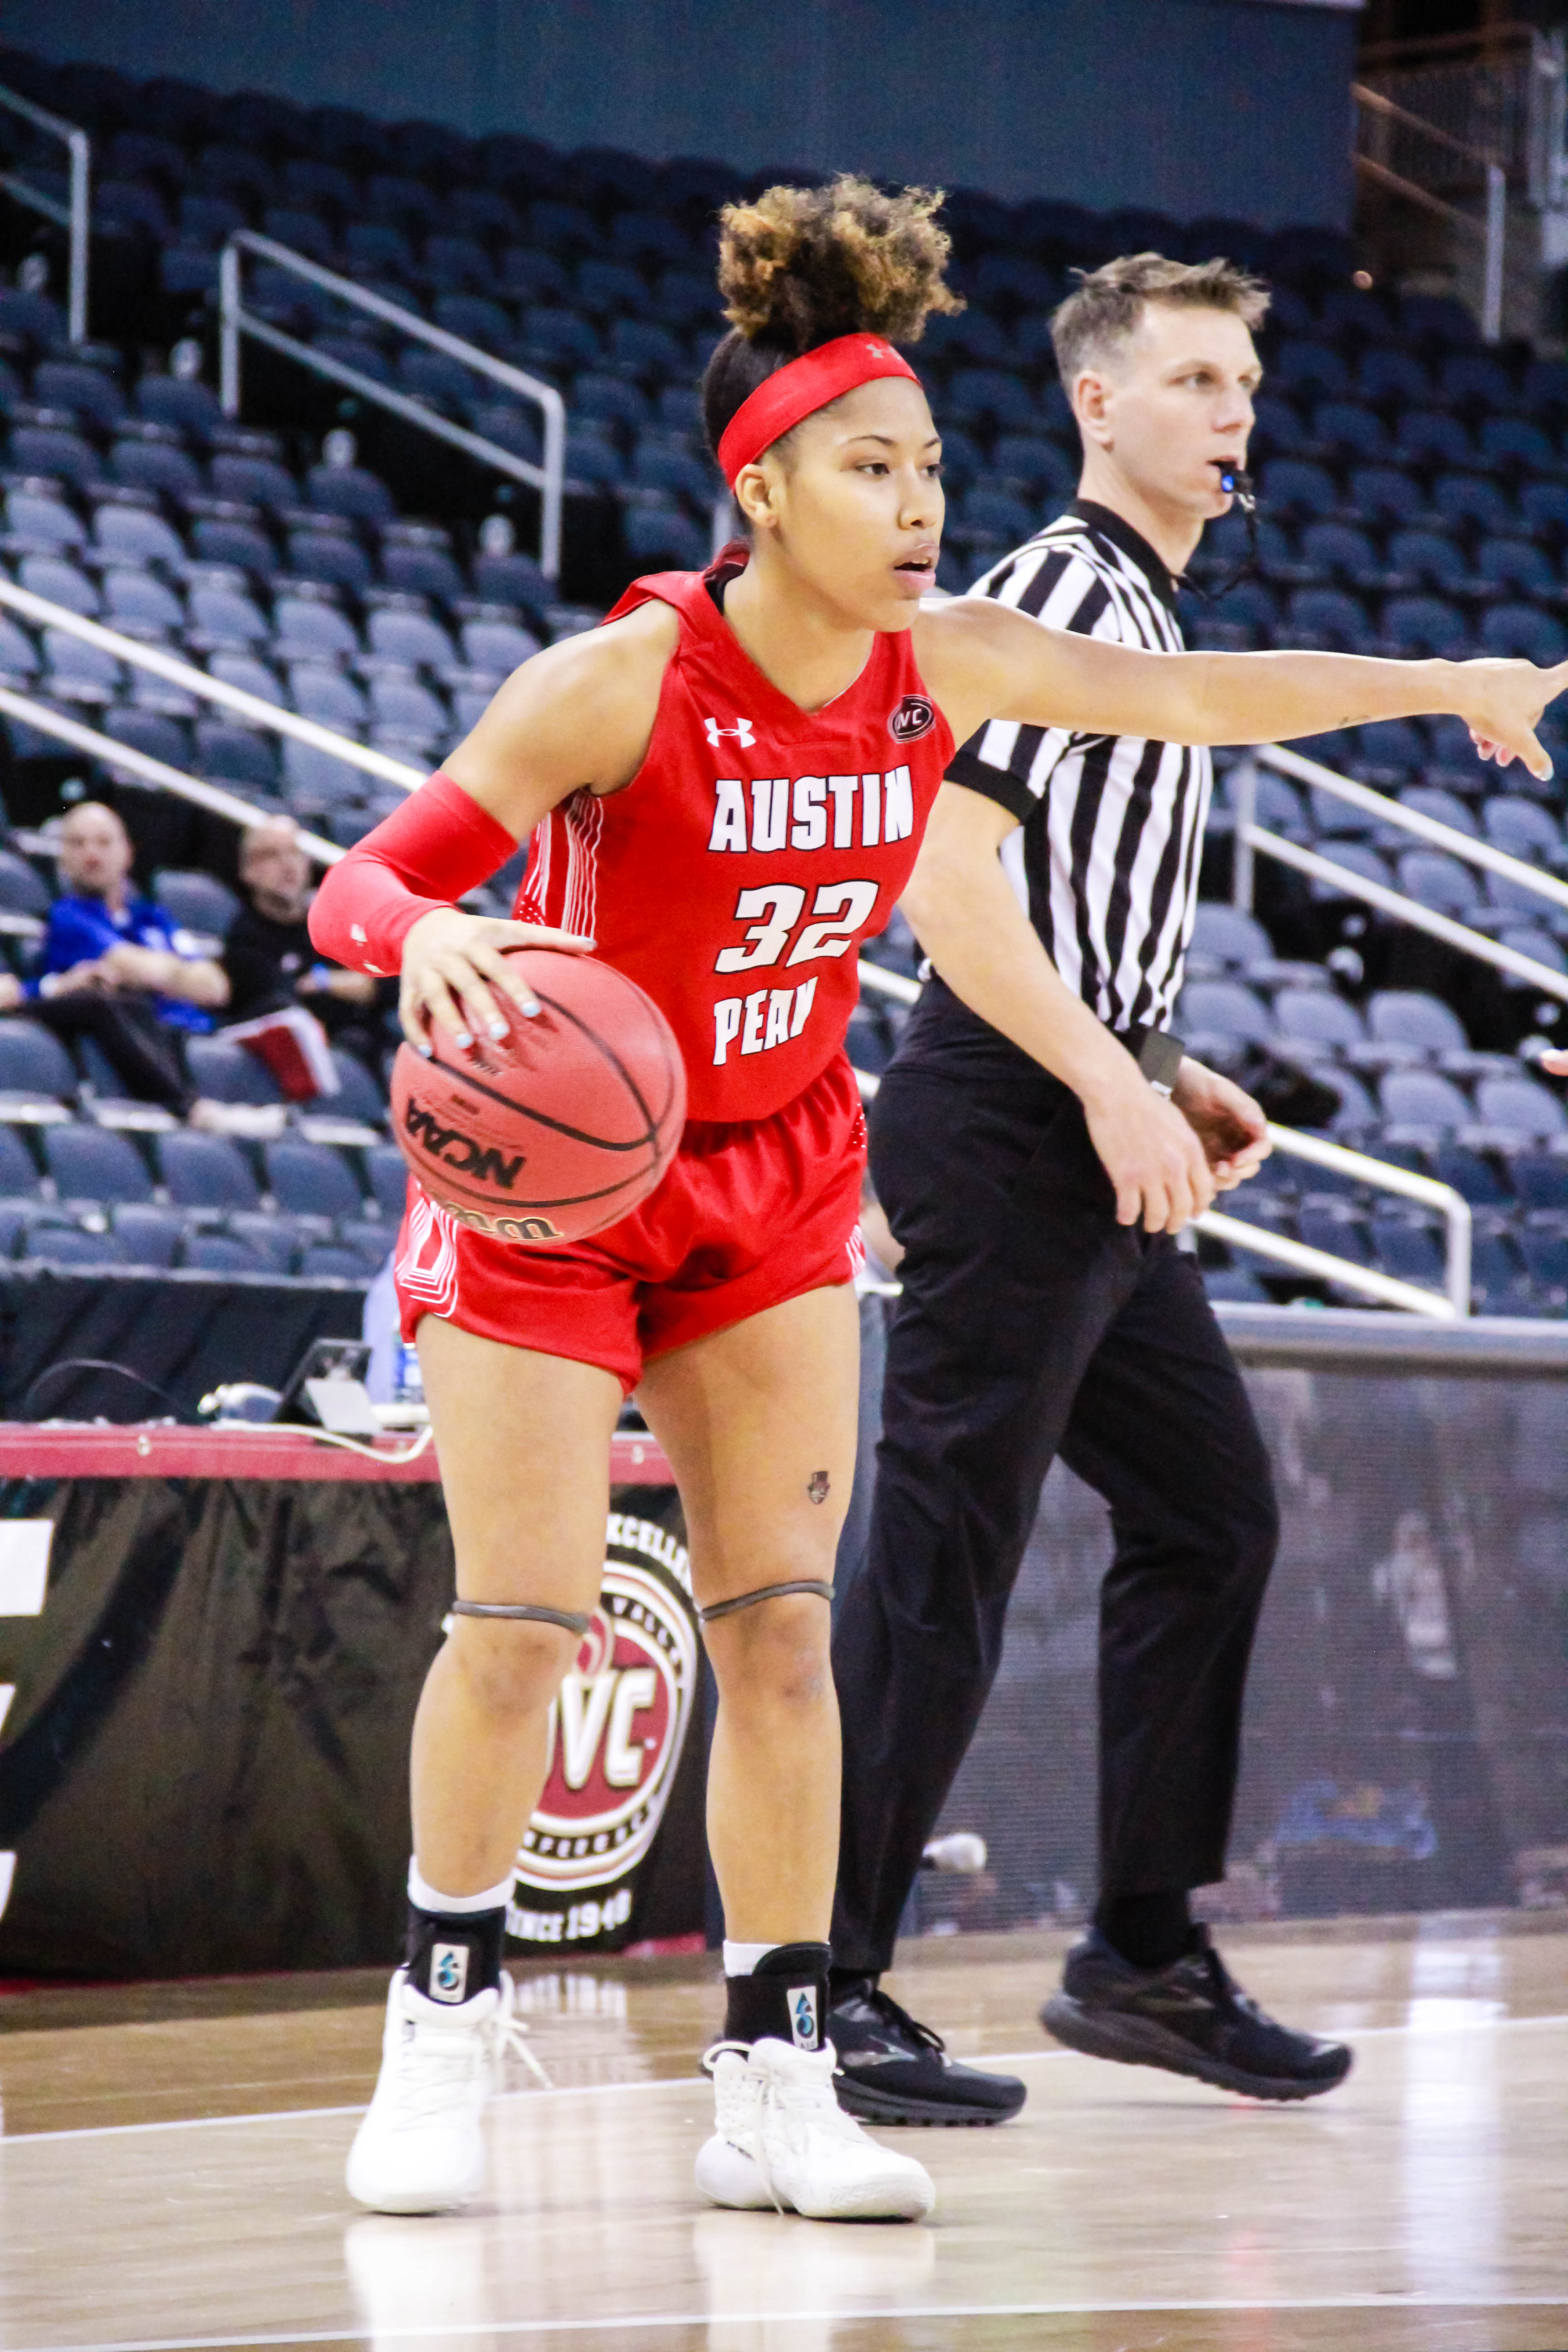 Brianah Ferby poured in 26 in the Govs season-opening game at North Alabama. MAISIE WILLIAMS | THE ALL STATE